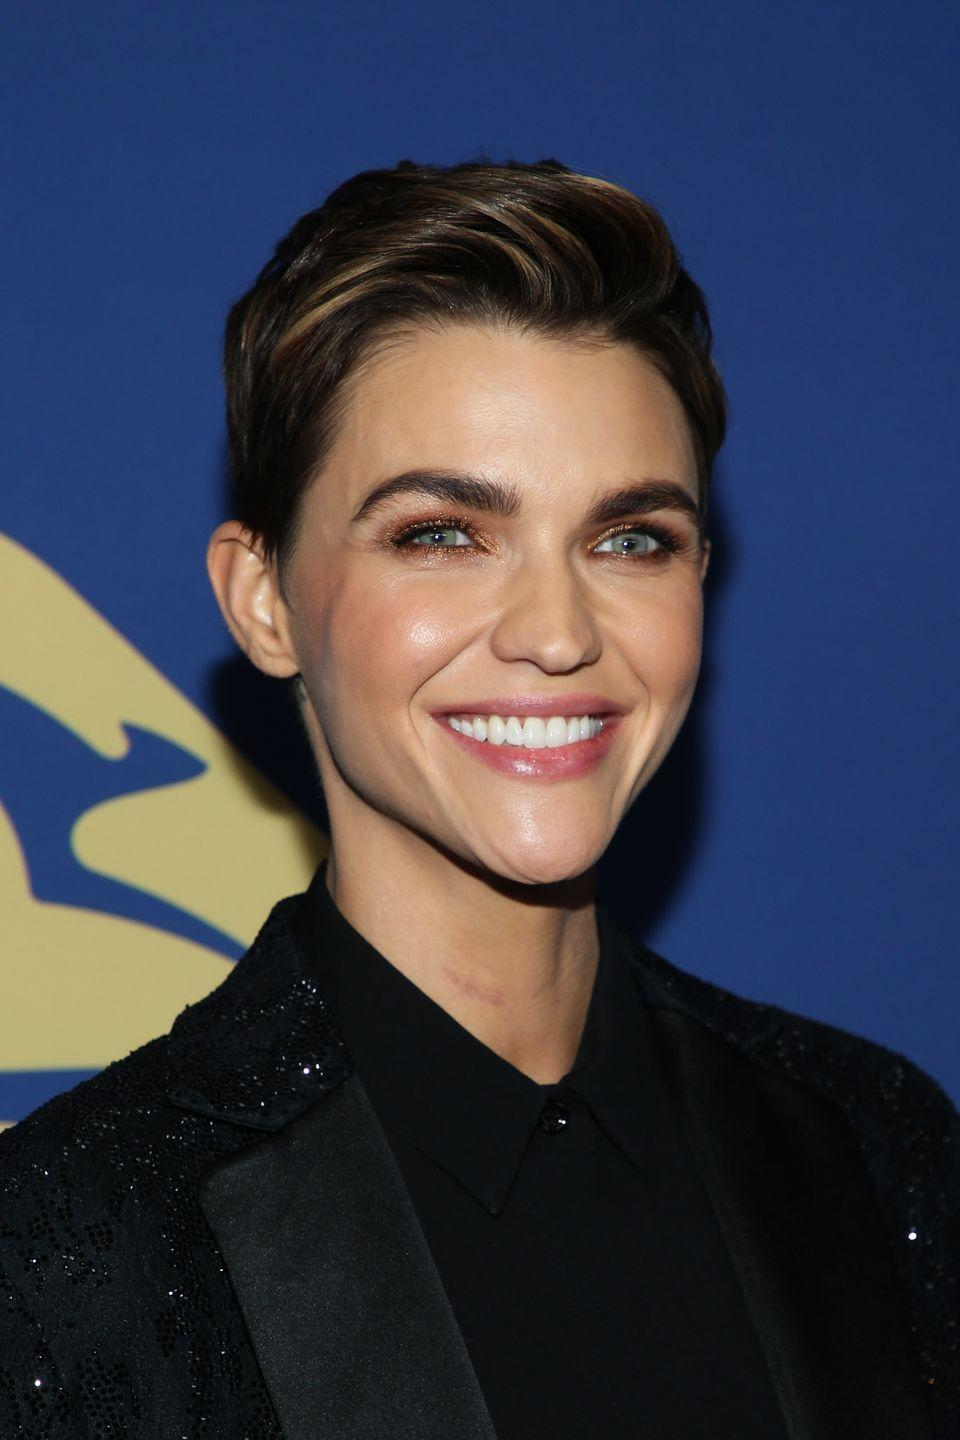 <p>It takes a real beauty to pull off a short, voluminous pixie and Ruby Rose does just that. No one rocks a short cut better than she does.</p>